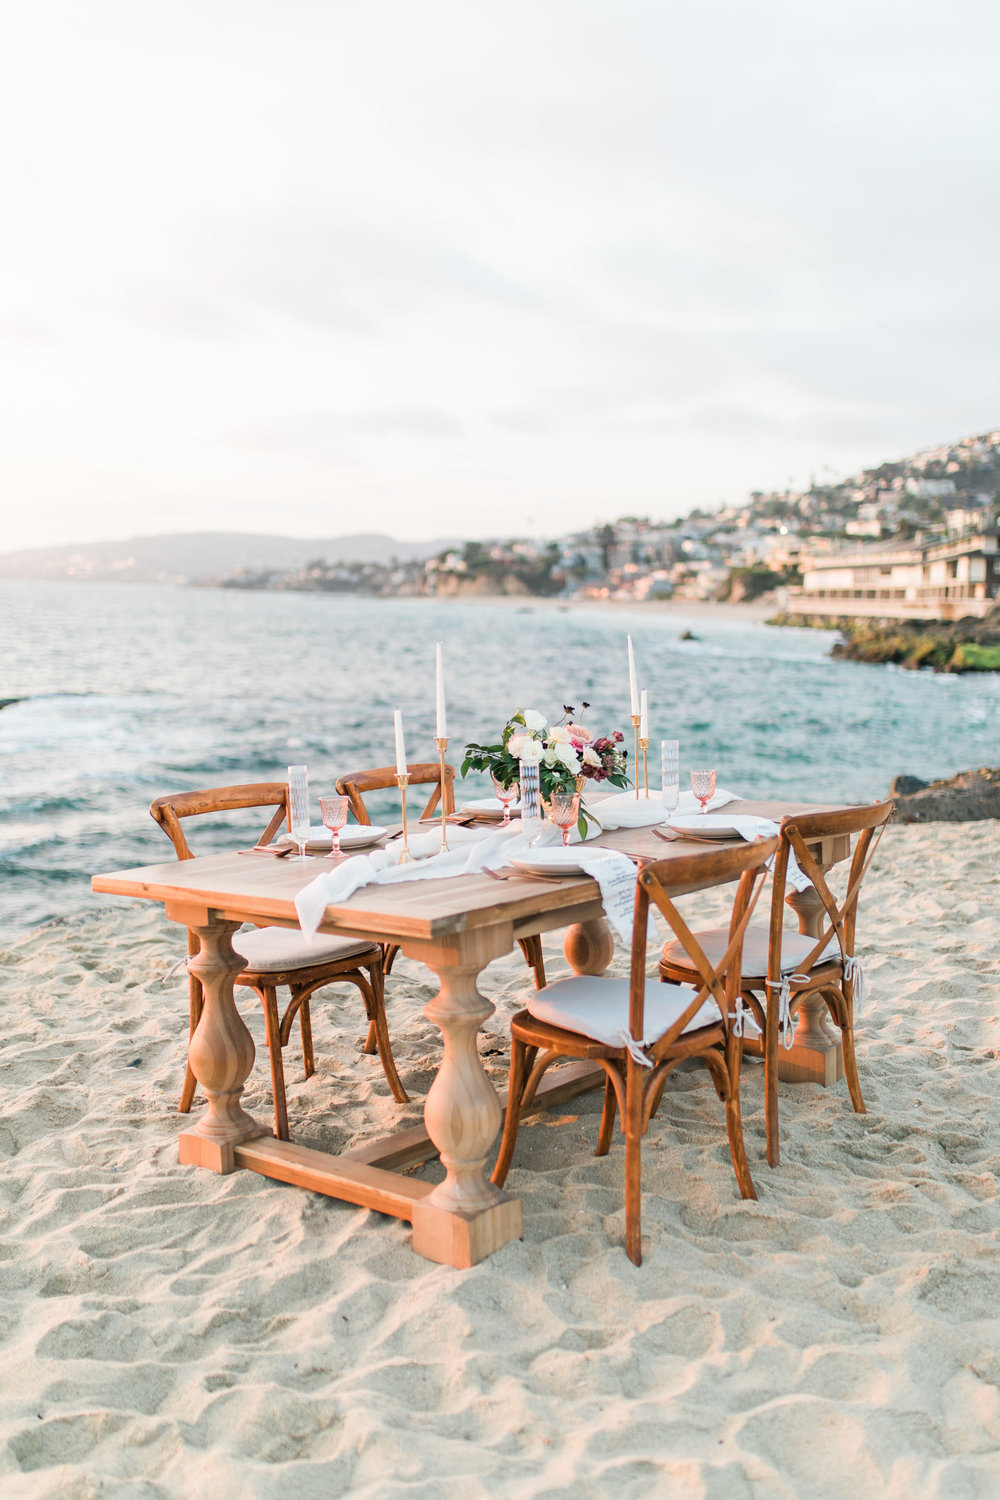 Laguna-Beach-Wedding-Photos-by-JBJ-Pictures-3.jpg